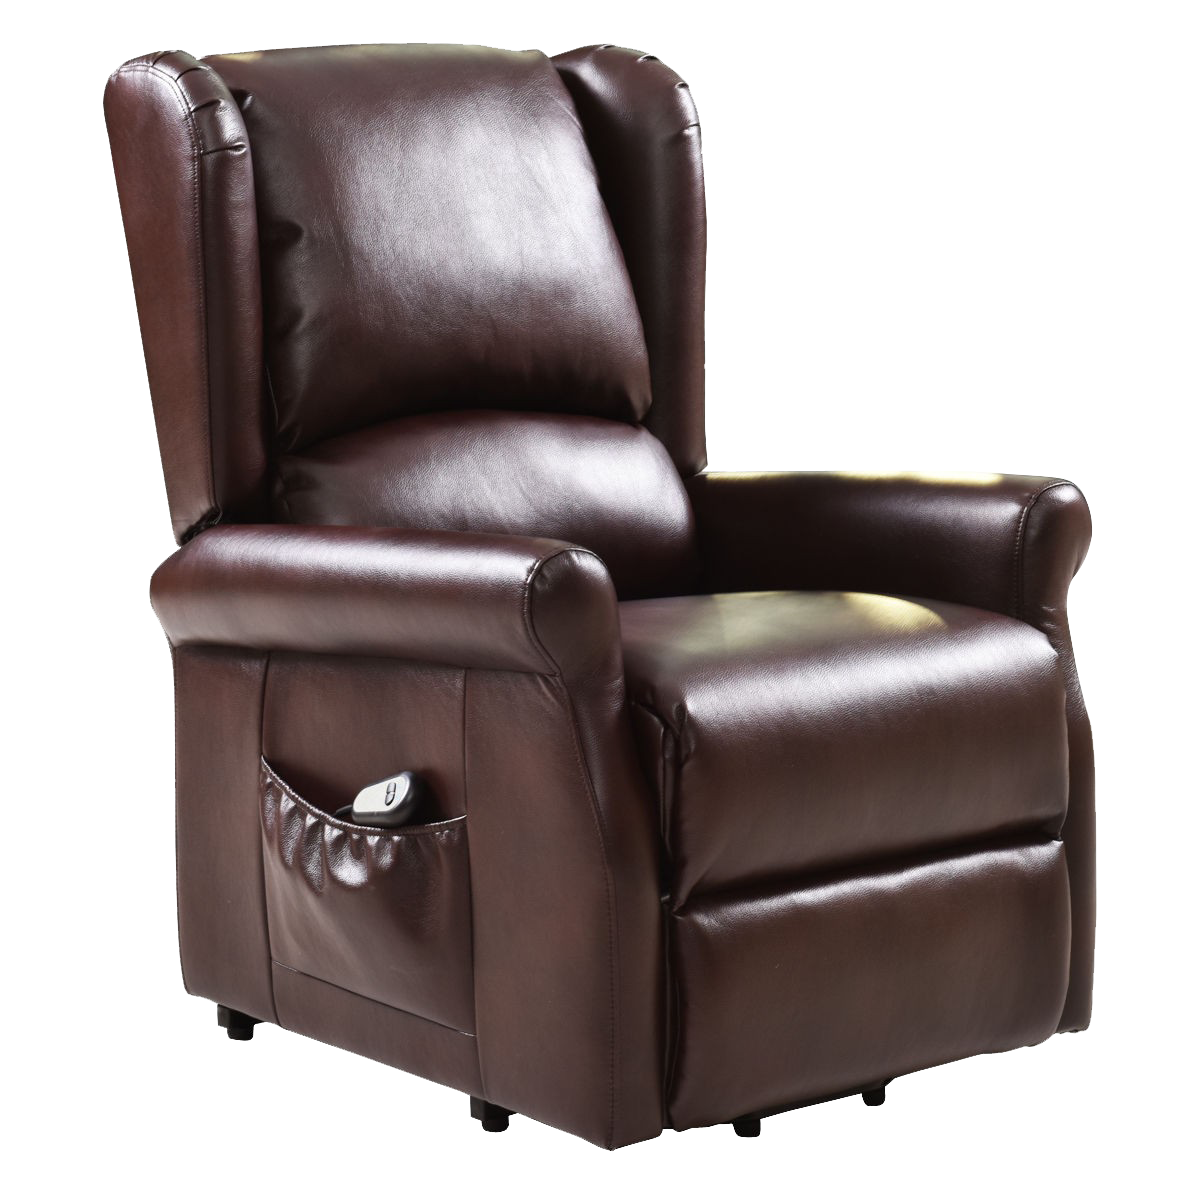 Home & Kitchen Furniture arm chairs and recliners and